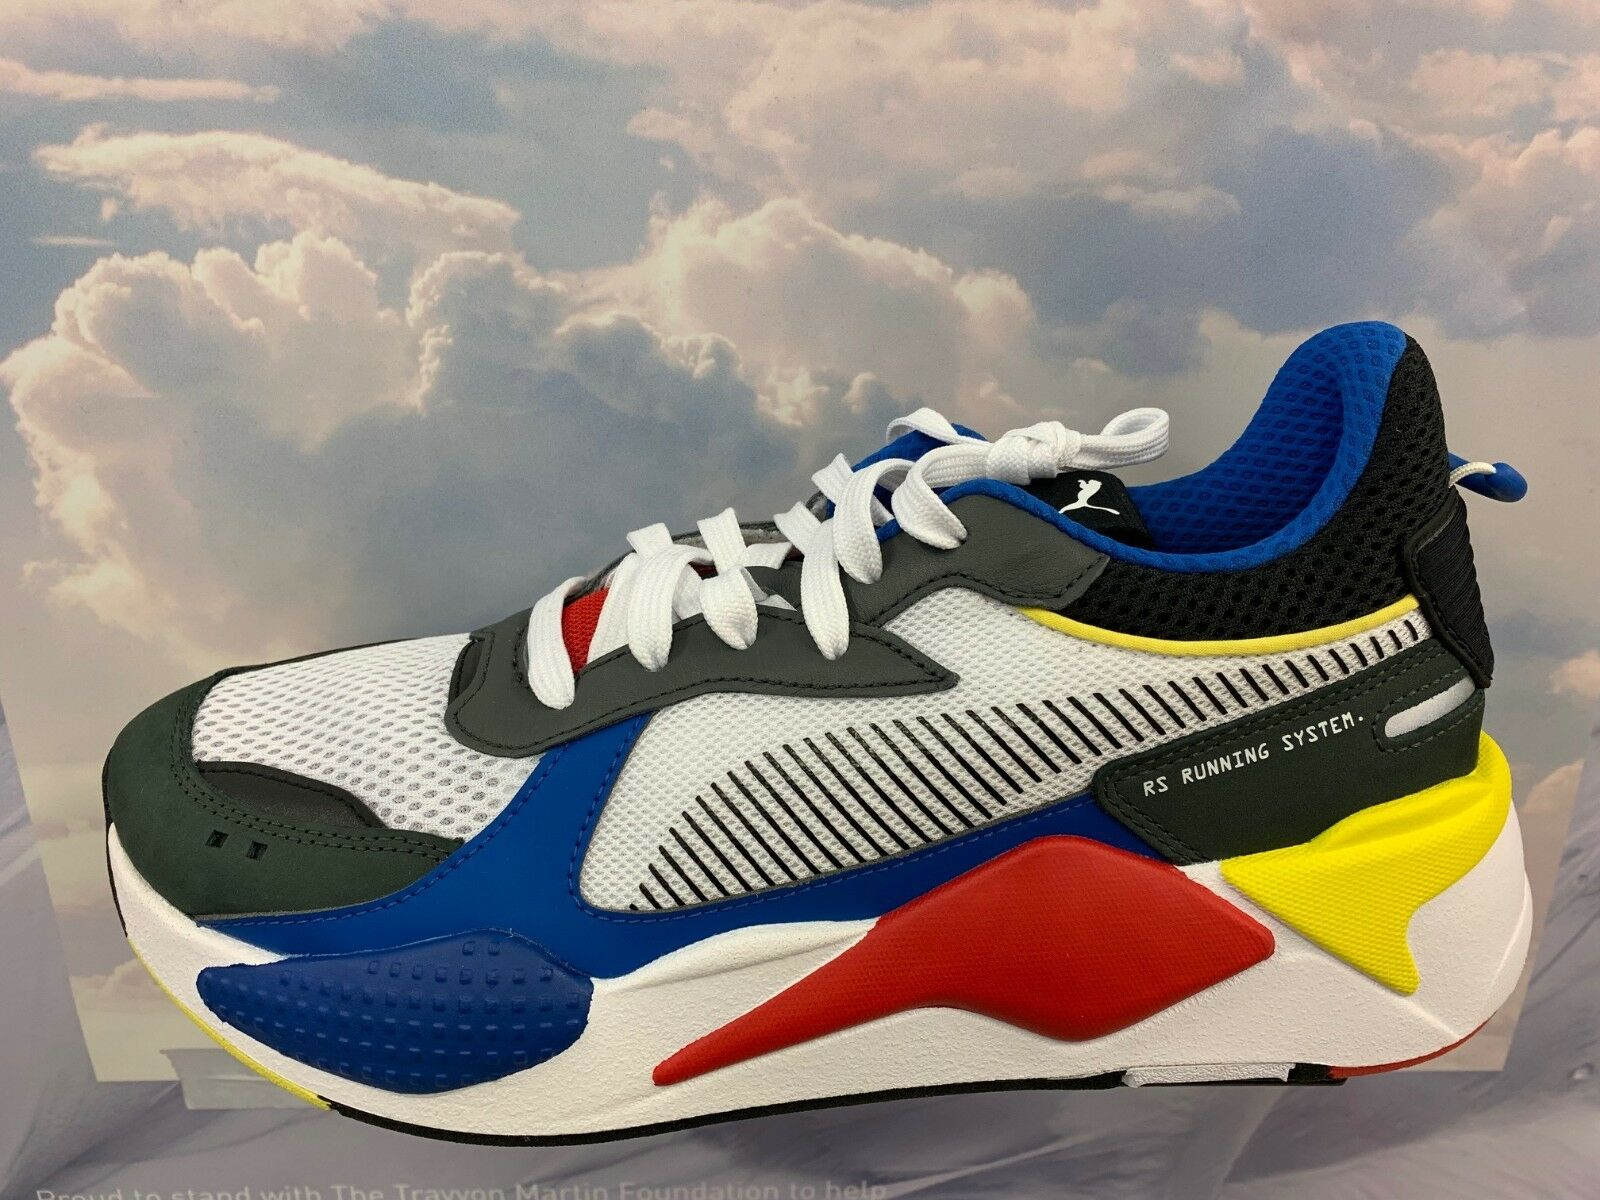 Puma RS-X Toys Running System White Black bluee Red Yellow Men Sz 4Y-13 369449-02